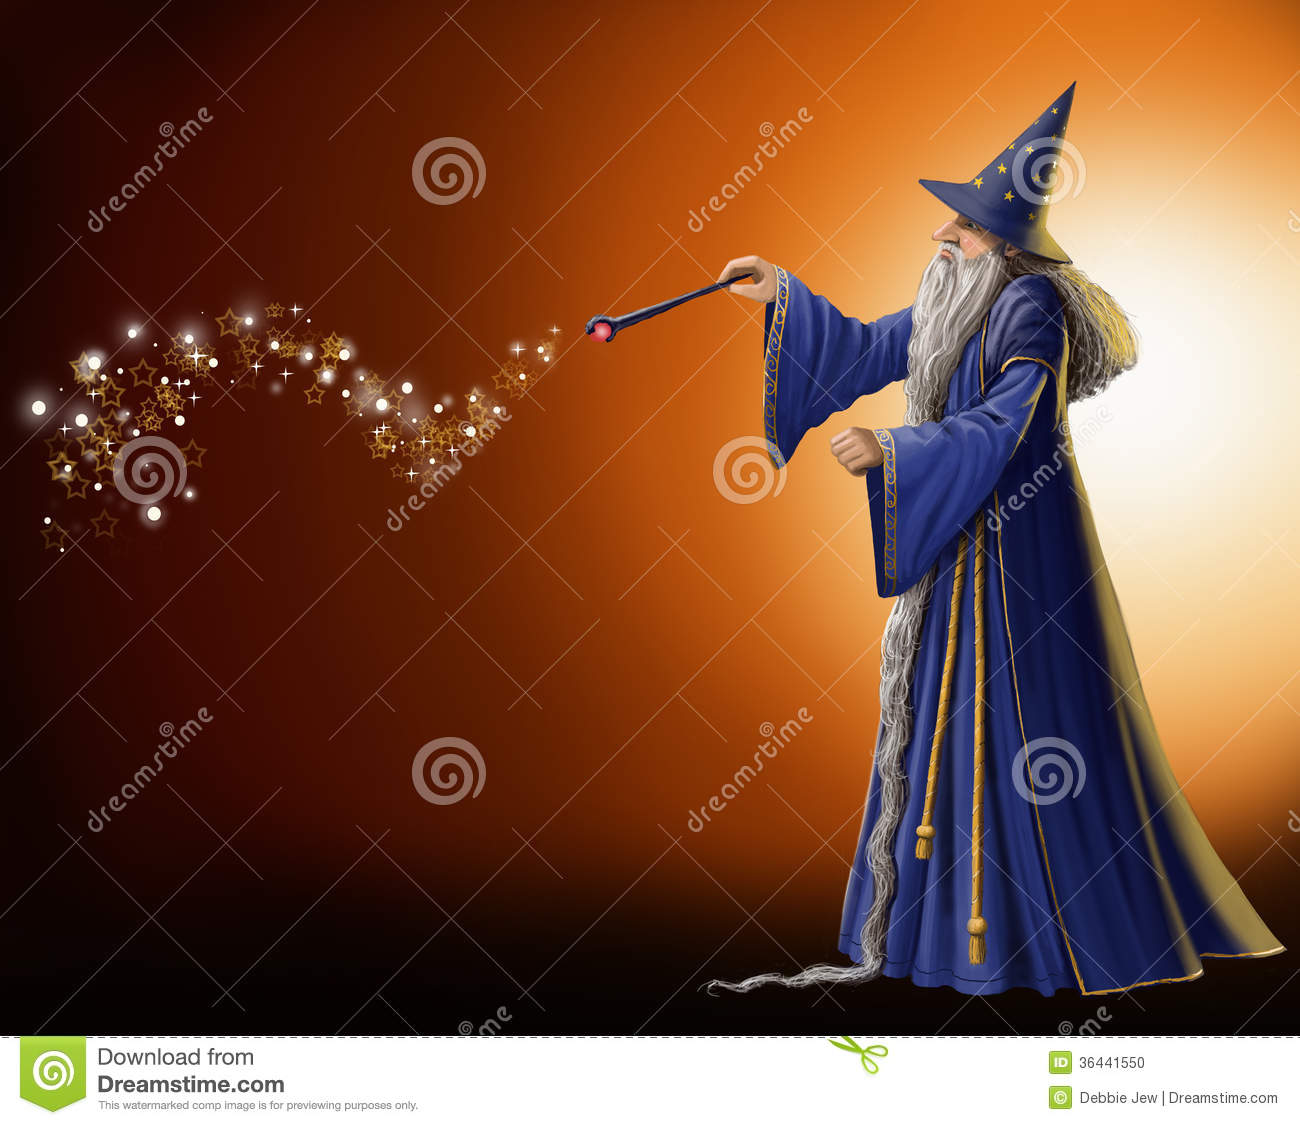 business plan in interior design with Stock Photo Magical Wizard Digital Illustration Waving His Magic Wand Created Using  Bination Corel Painter Photoshop Image36441550 on Stock Photo Reykjavik Church Interior Icelandic Iceland Image31720930 moreover Thor Trucks Electric Truck Etone Tesla likewise Ac modation In Bangkok furthermore Stock Image 3d Humans Forming Colorfull Home Word Image22289741 in addition Editorial Image Nissan Juke Dig Turbo Engine Hong Kong China Oct Test Drive Oct Hong Kong Image46306445.